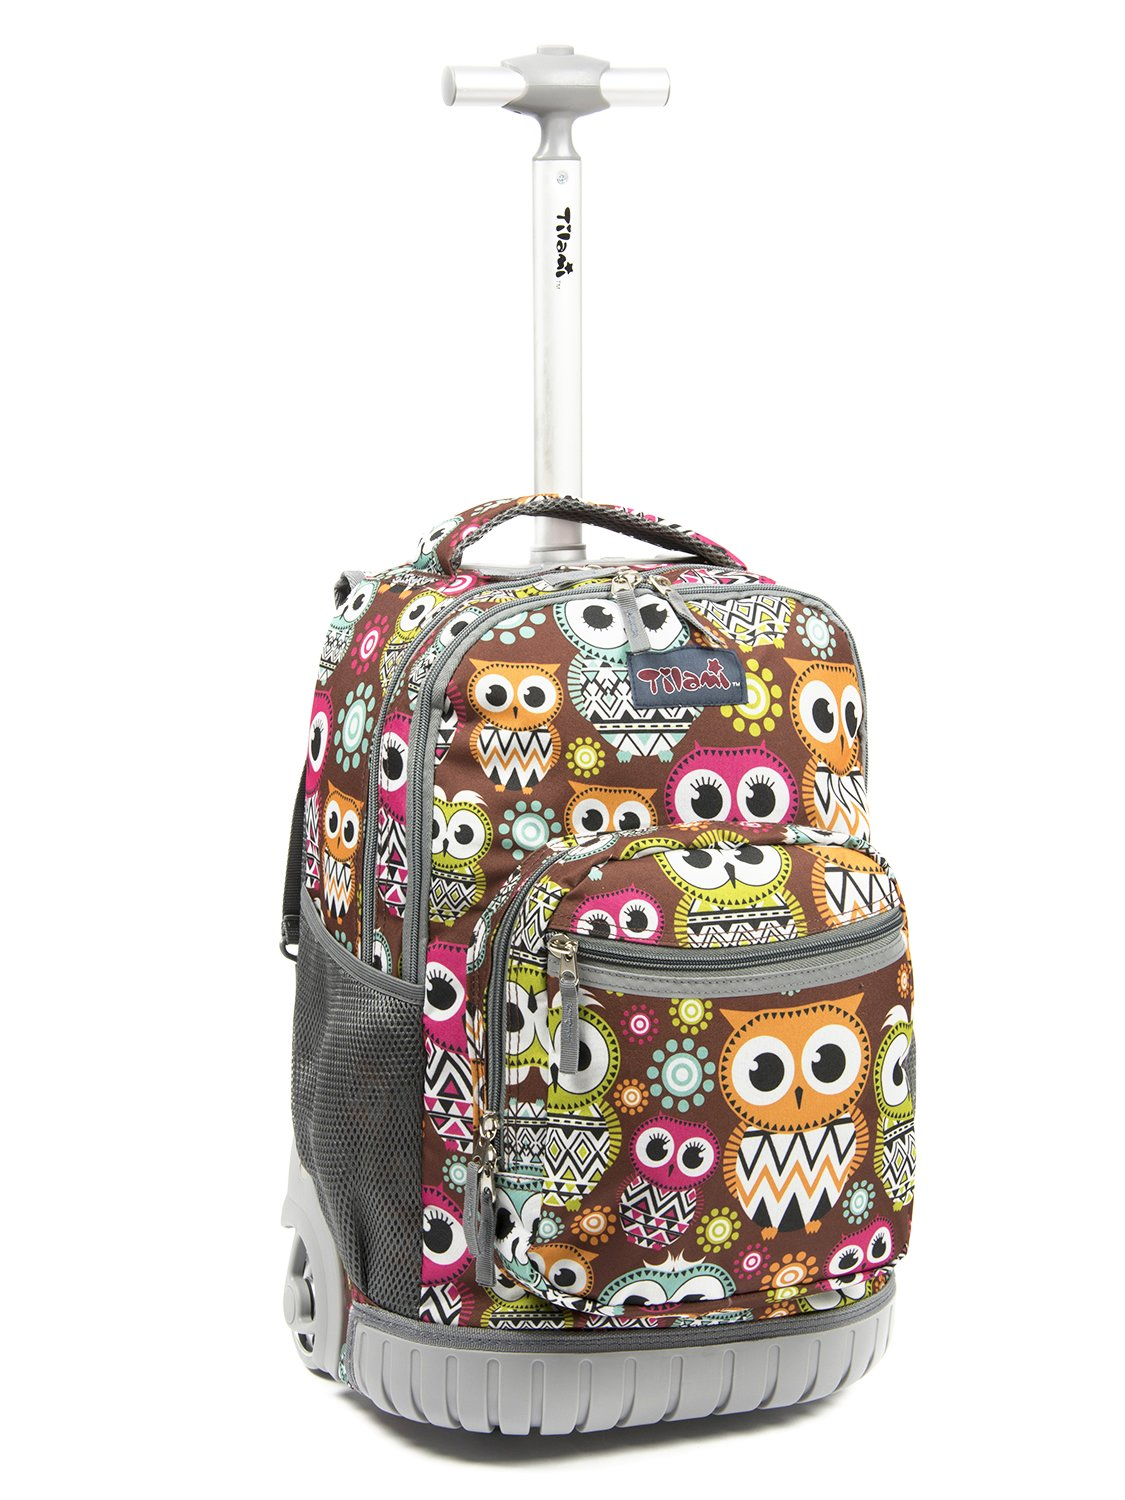 Tilami New Antifouling Design 18 Inch Oversized Load Multi-Compartment Wheeled Rolling Backpack Luggage for Kids … (Owl Big Eye)